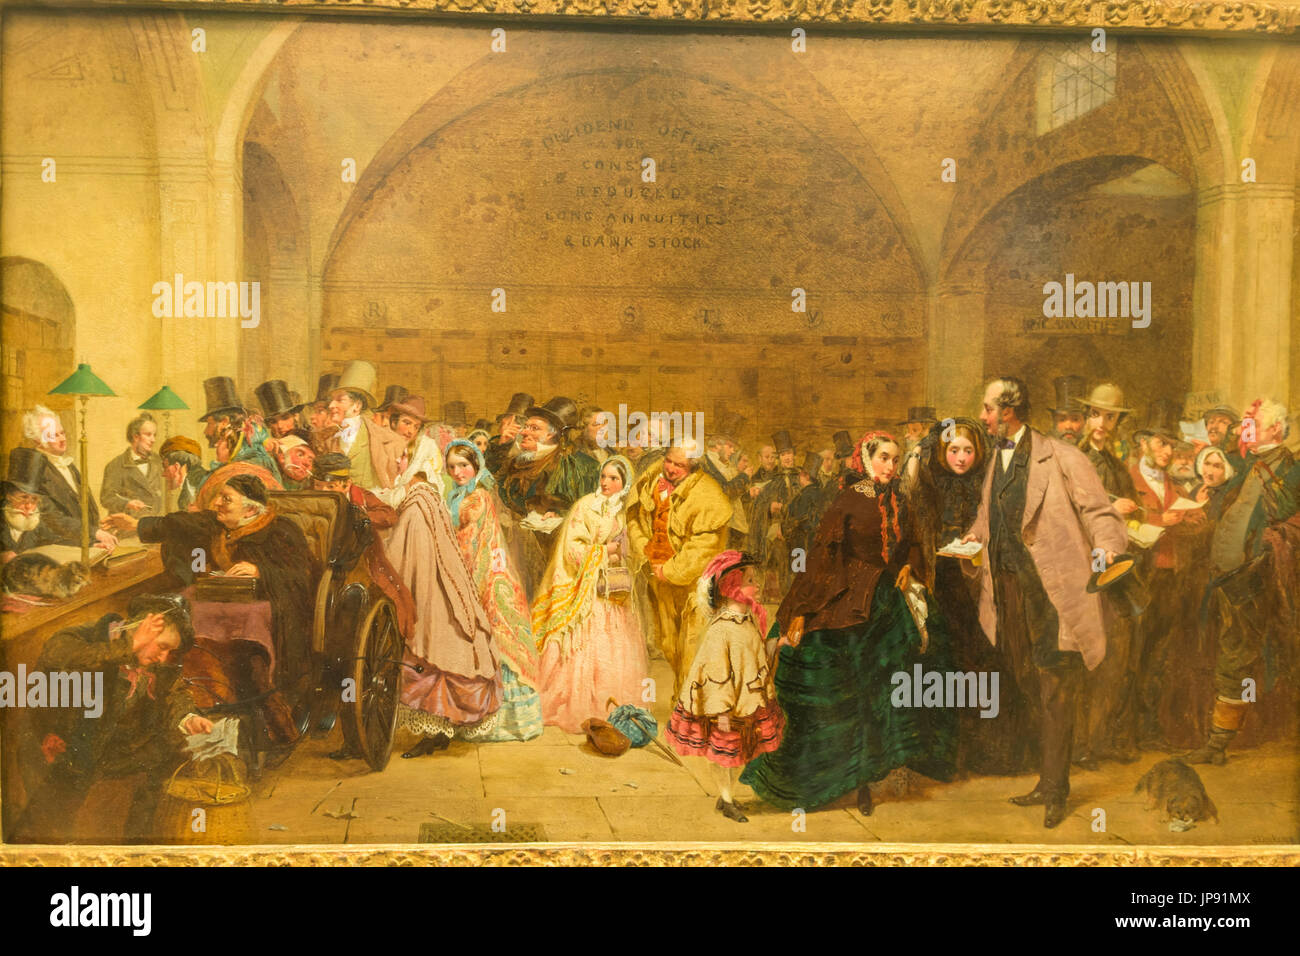 England, London, The City, Bank of England Museum, Painting of Dividend Payment Day in The Dividend Office - Stock Image